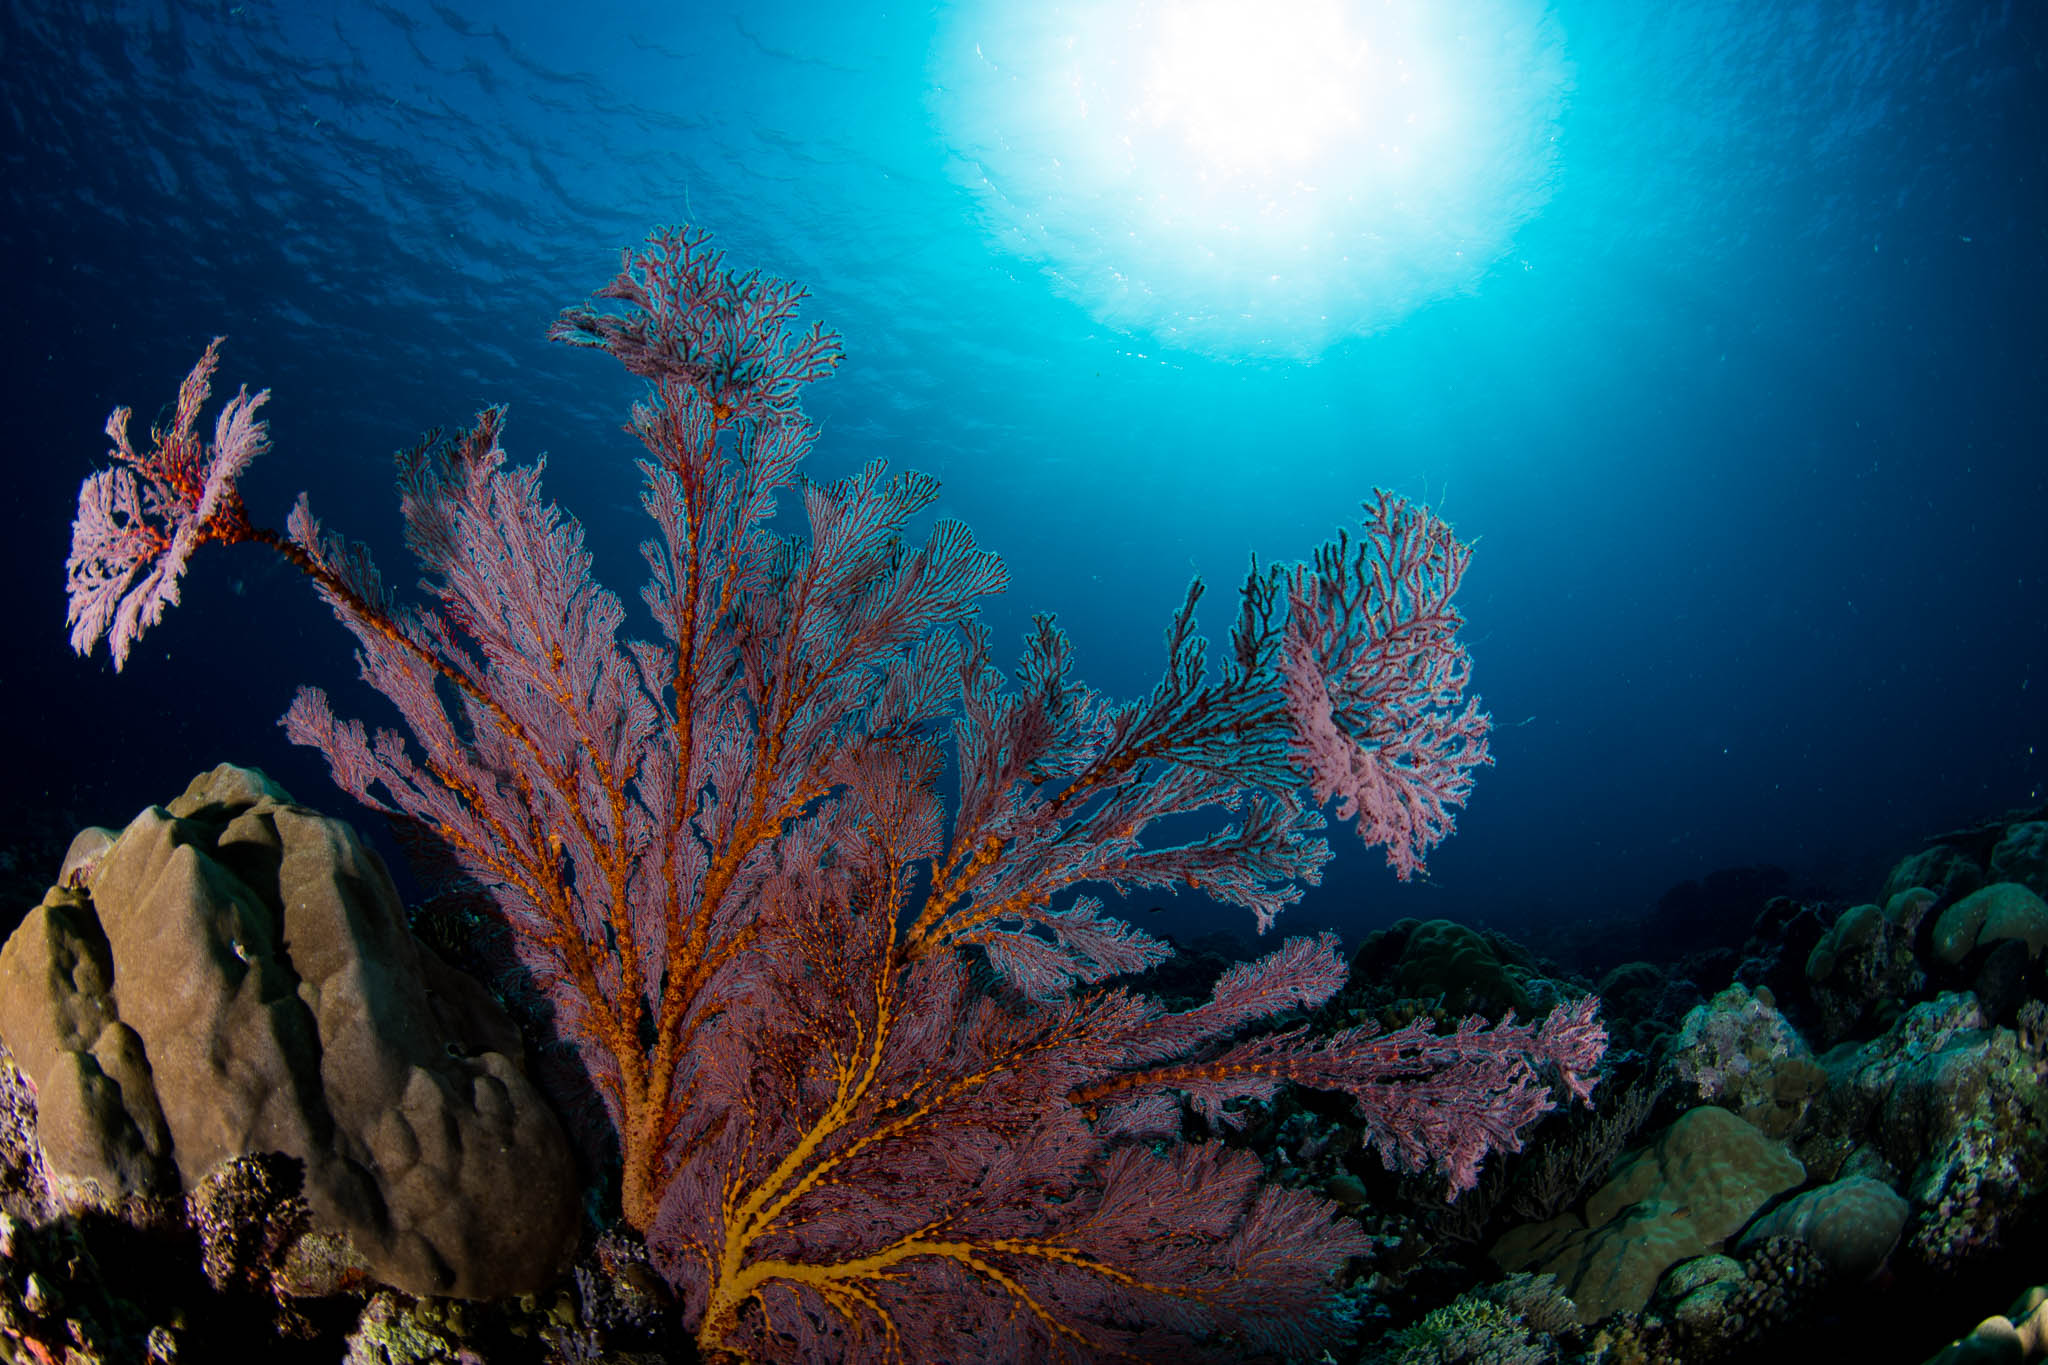 Sea Fan Sunburst while diving in Palau Ulong Channel